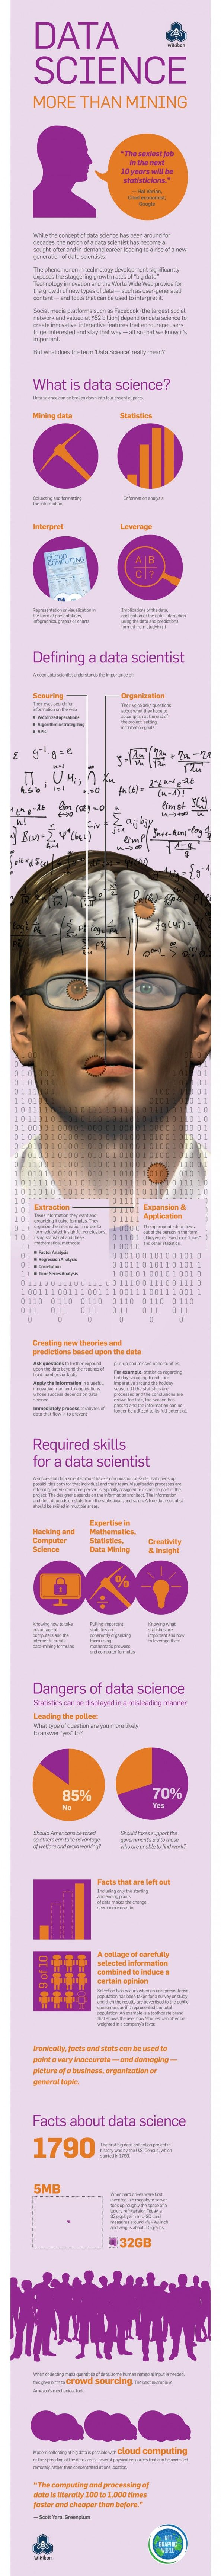 What is Data Science [Infographic] #DataScience